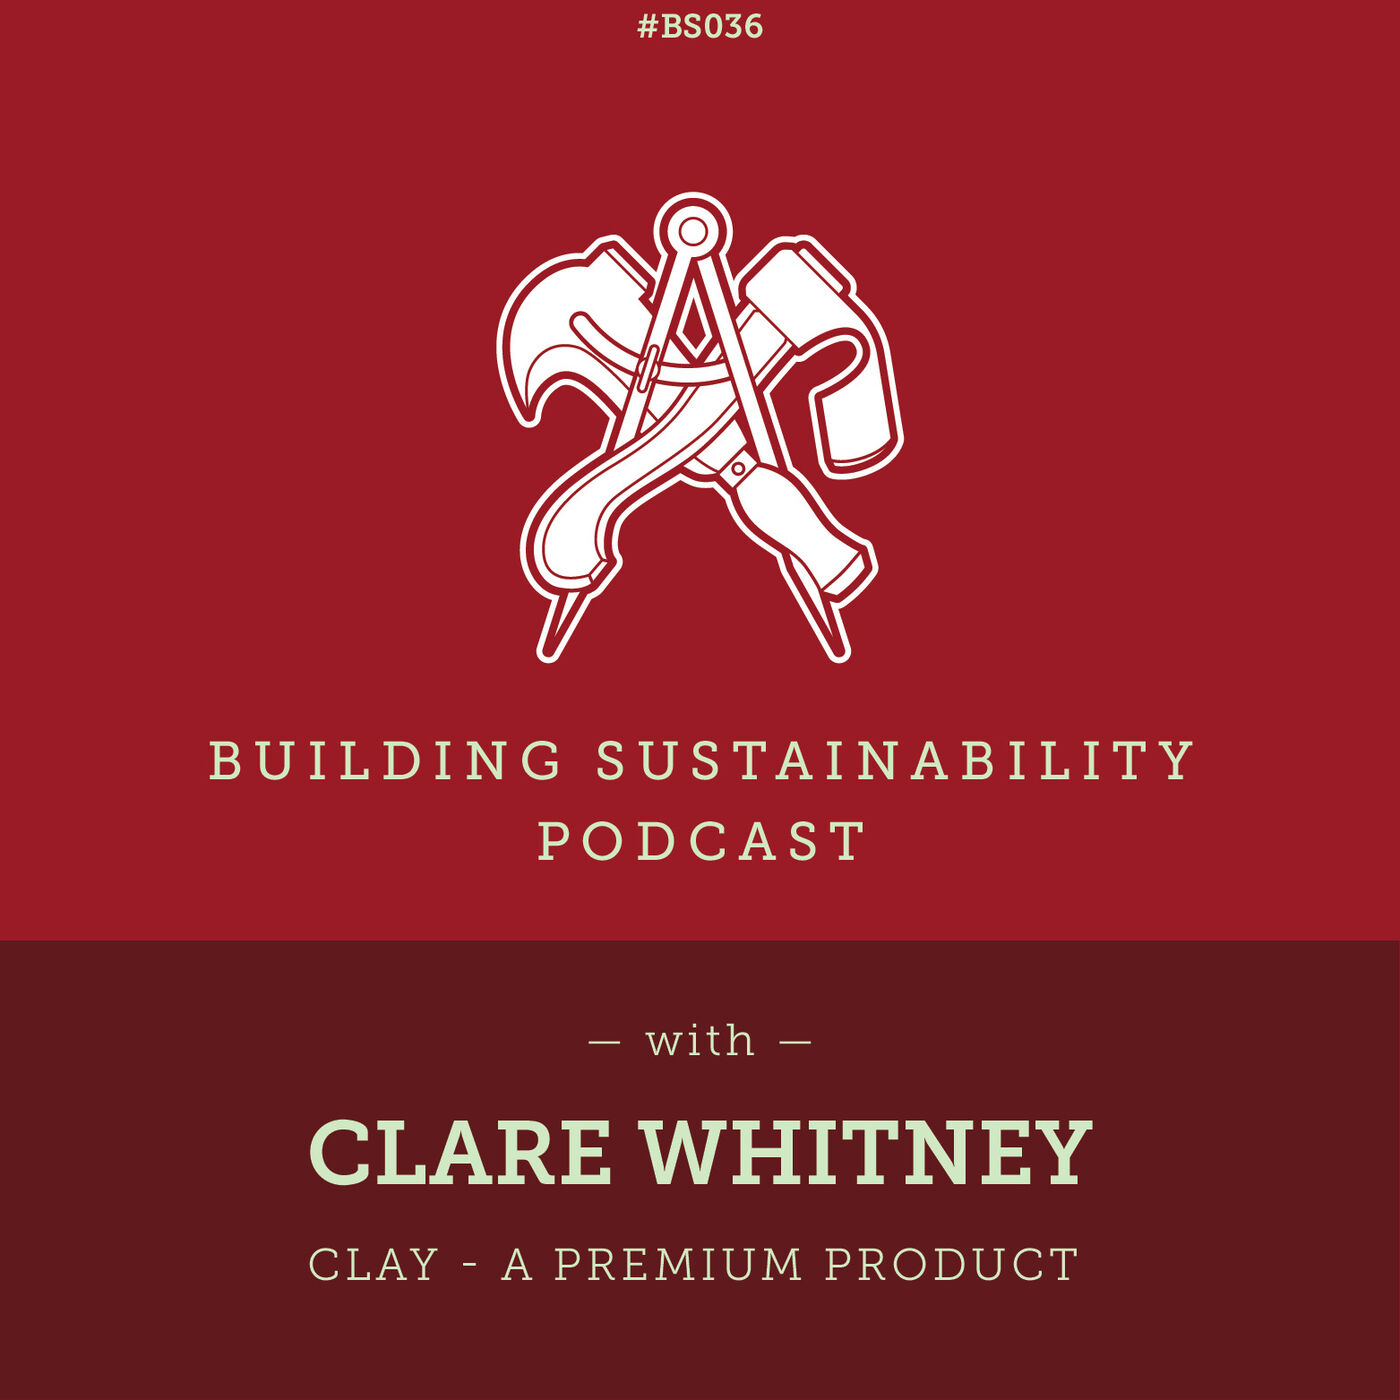 Clay - A Premium Product - Clare Whitney (Clayworks) - BS036